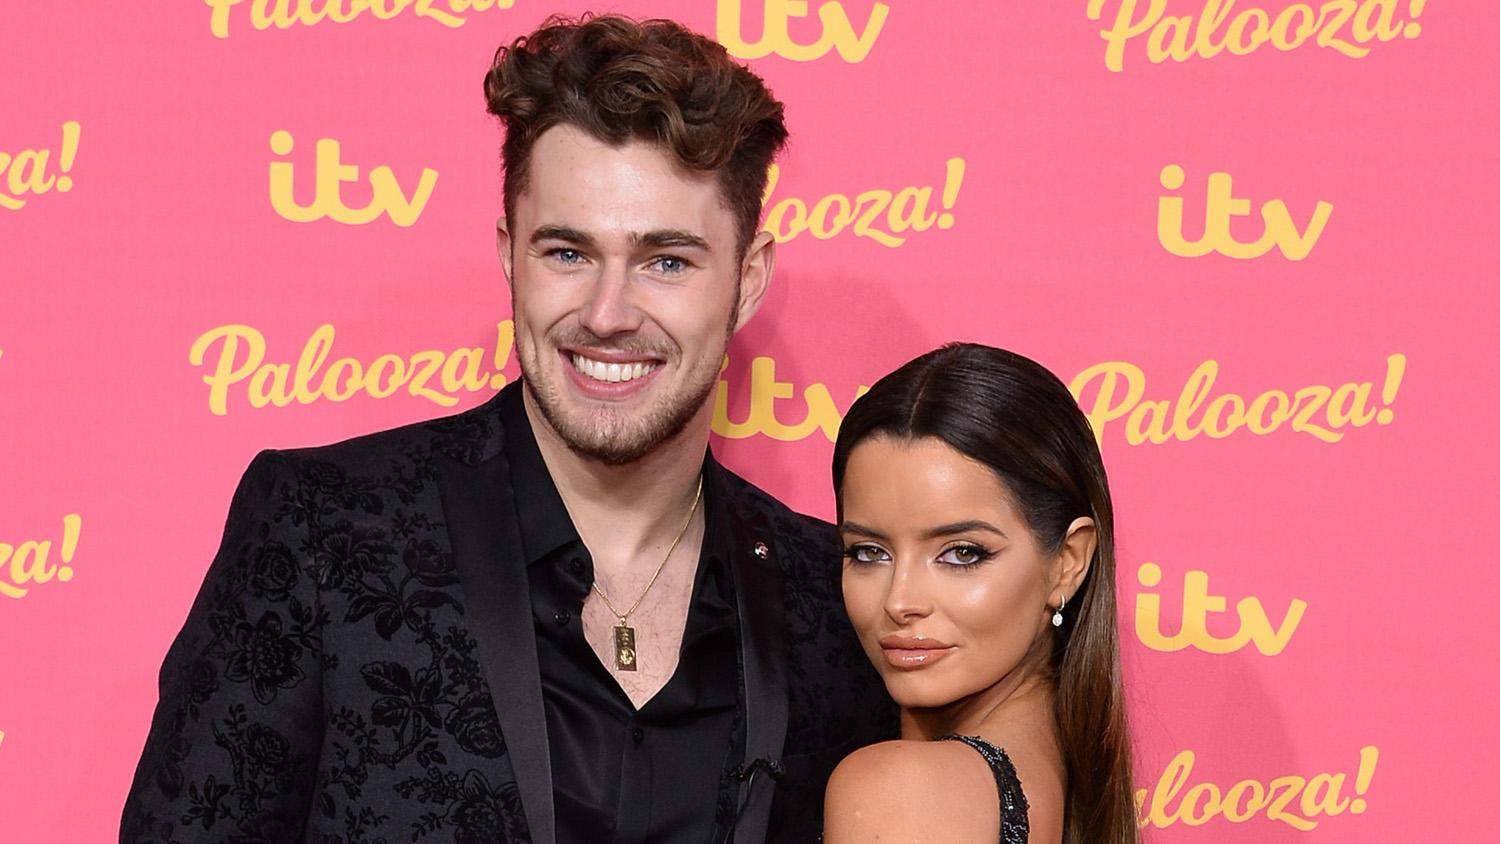 Love Island's Curtis Pritchard opens up about 'cheating' rumours